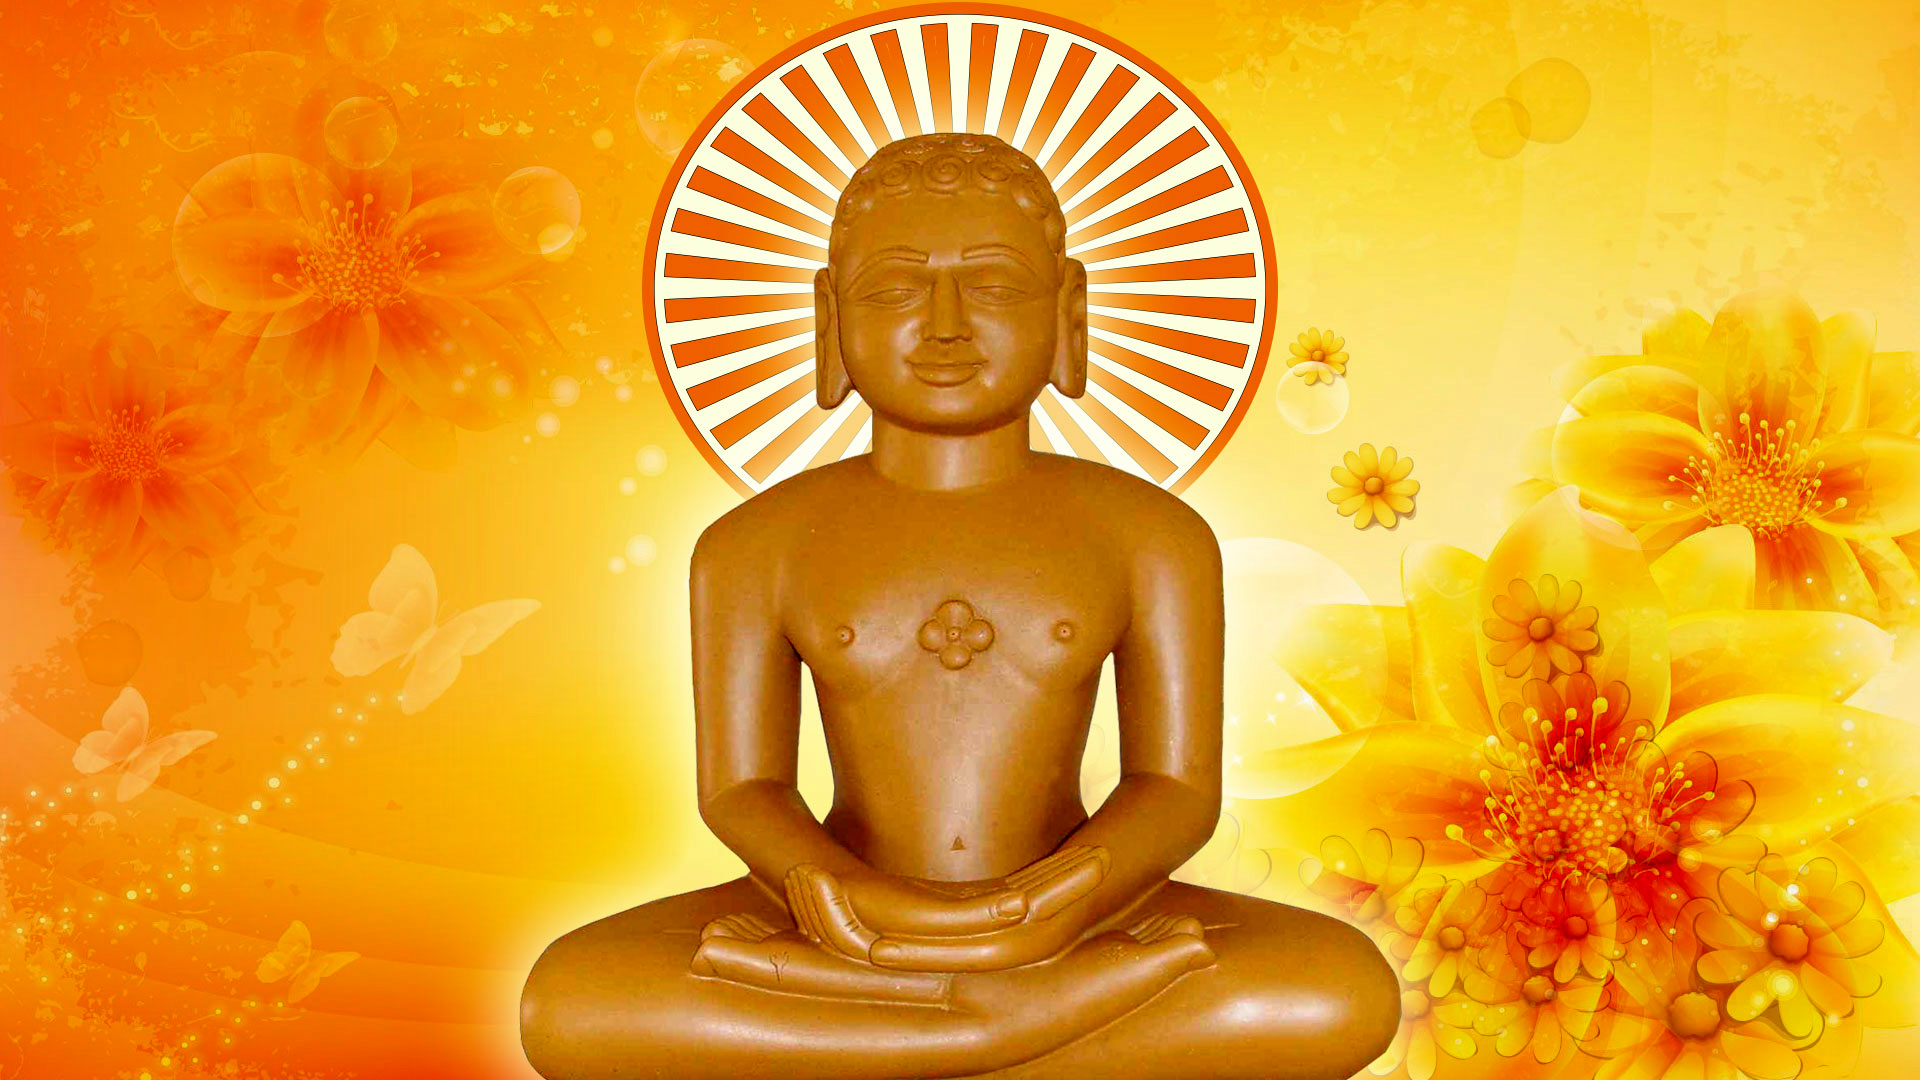 Mahavir Bhagwan Images For Whatsapp Dp Facebook Status Cover Photo